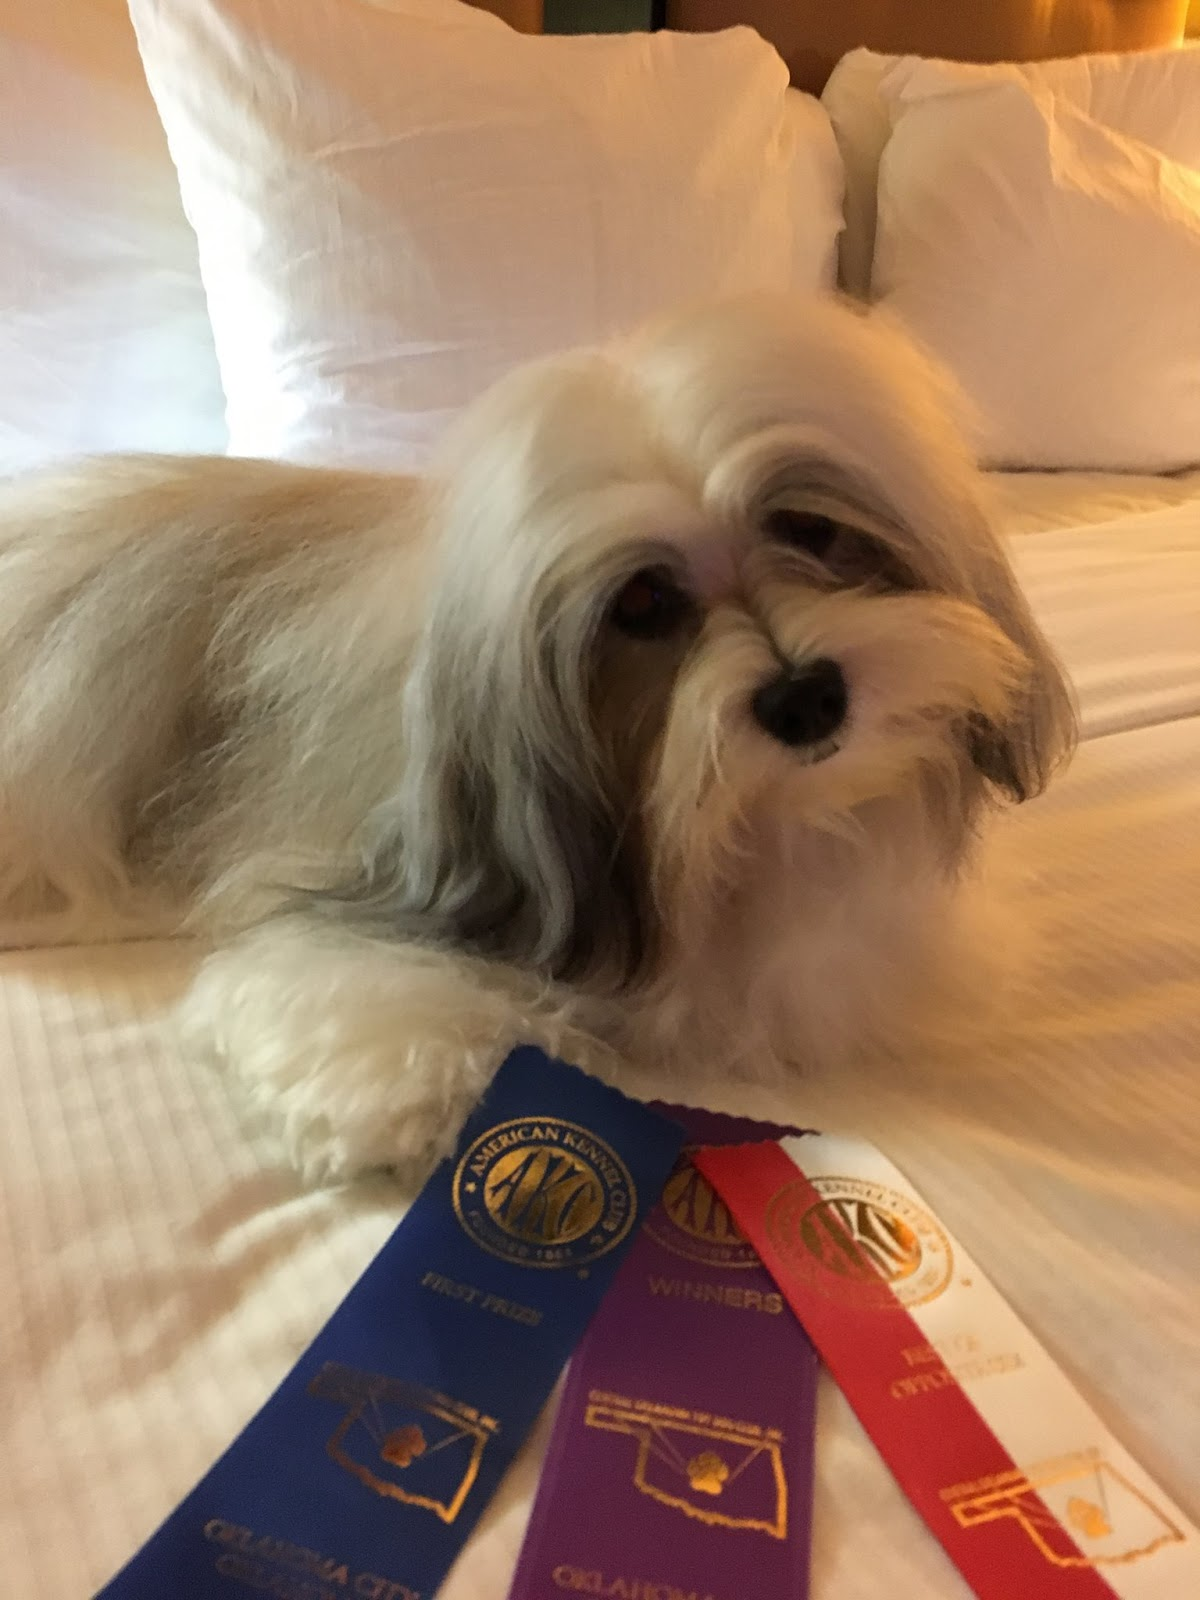 Black Russian Terriers, Bichons & Havanese, Oh My!: Central